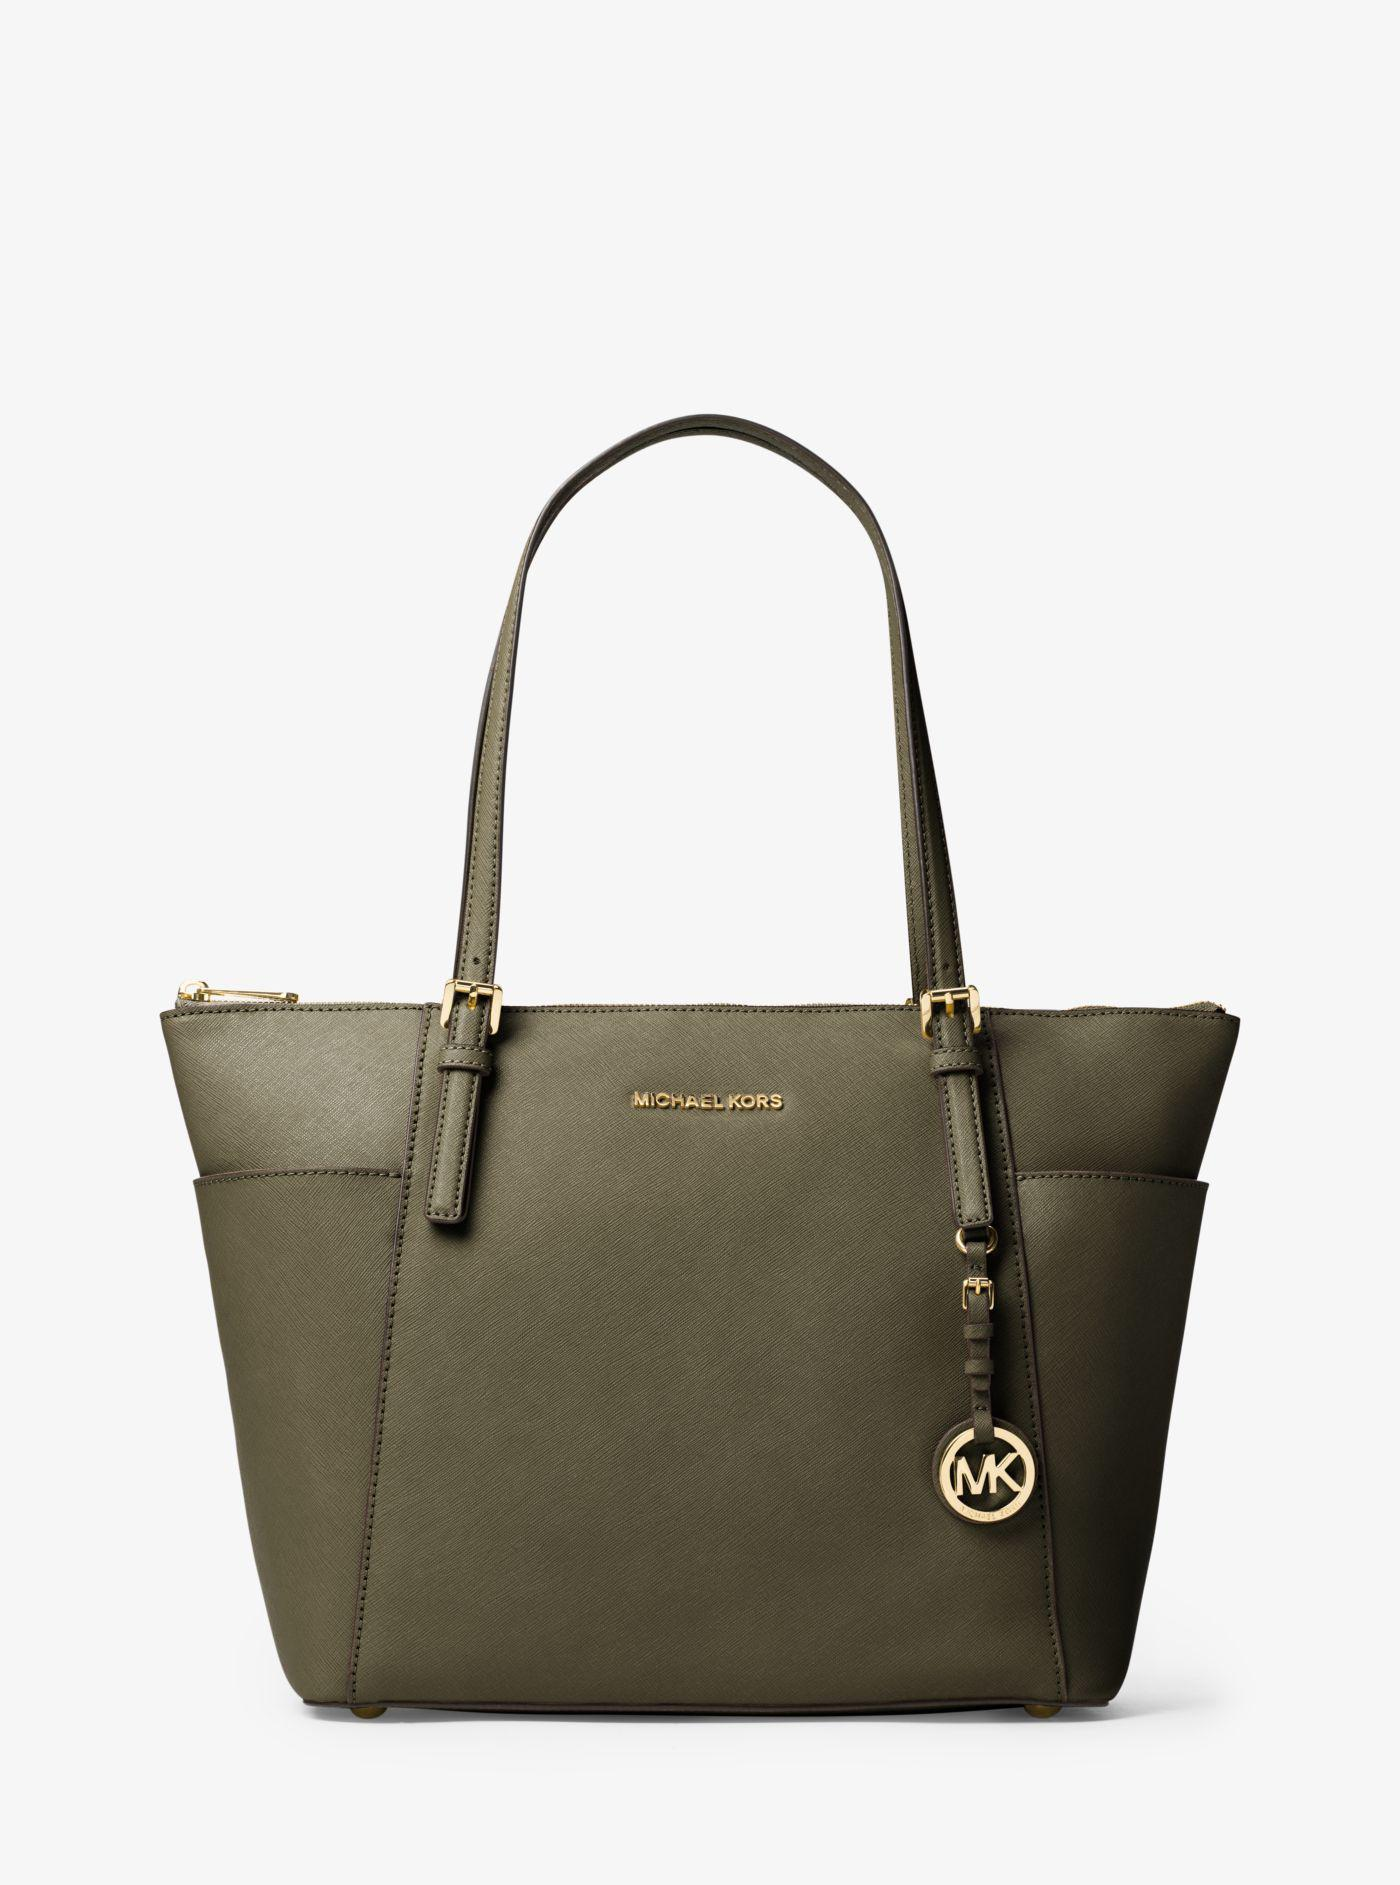 650b612d3a2a Michael Kors - Green Jet Set Large Top-zip Saffiano Leather Tote - Lyst.  View fullscreen